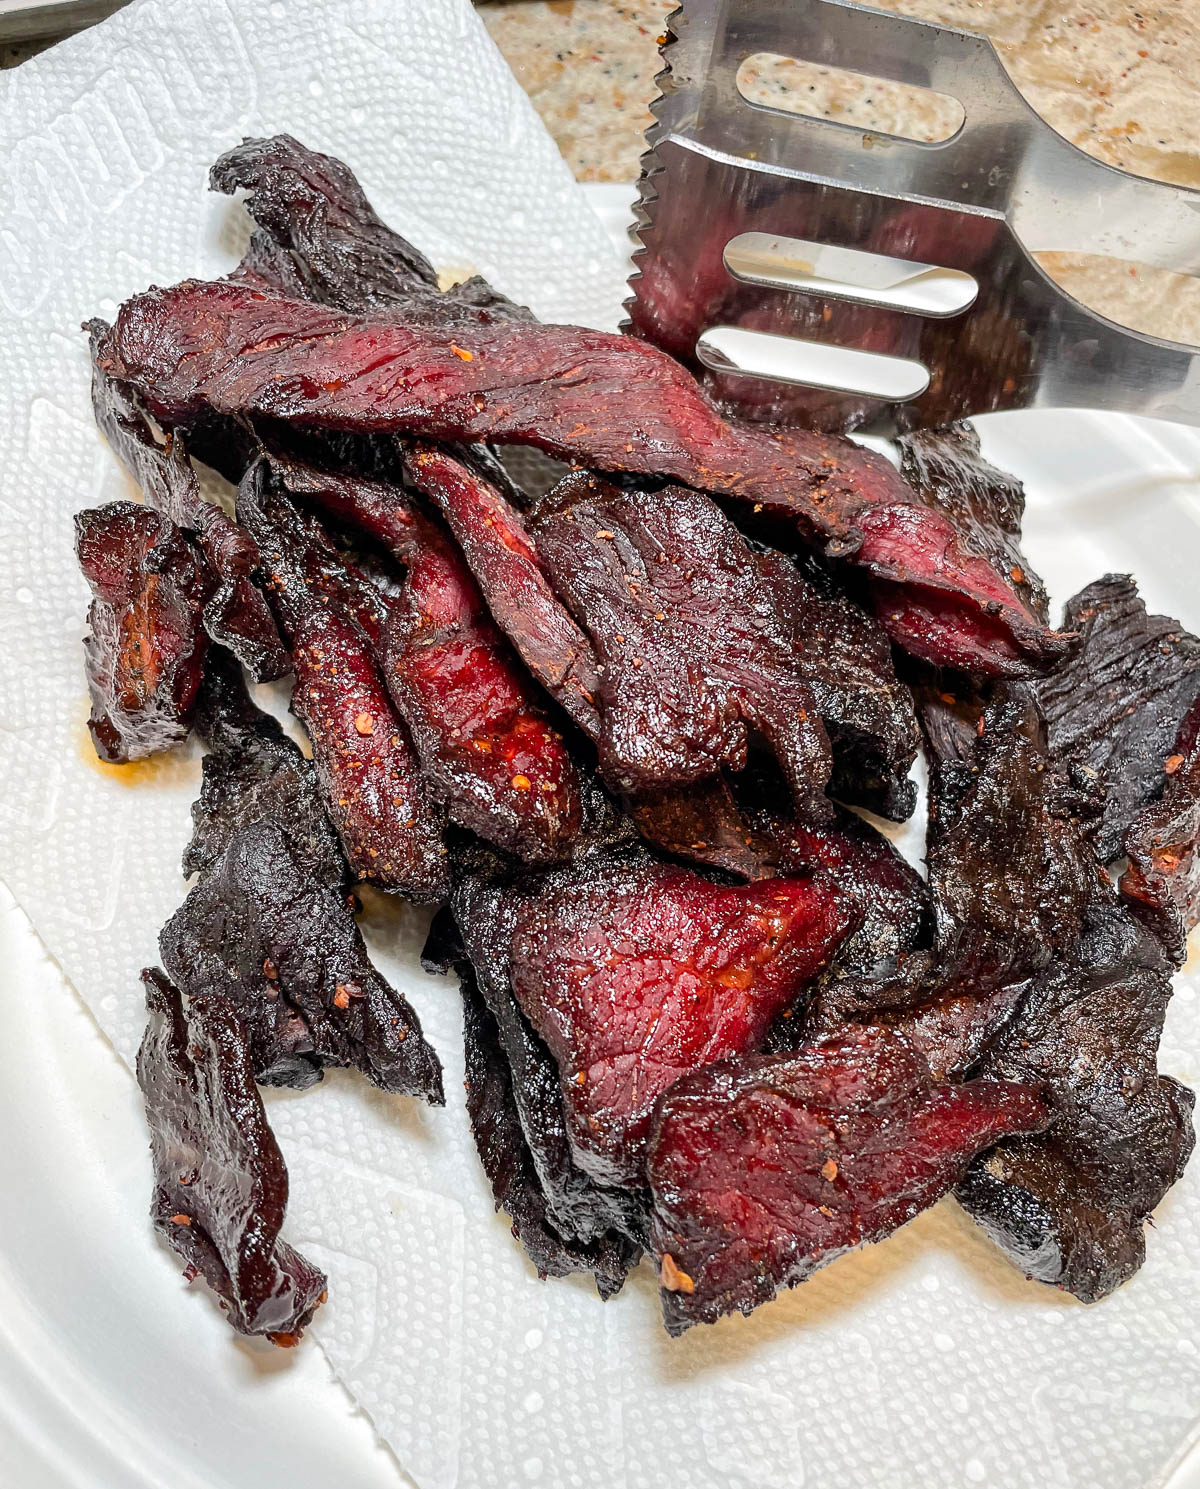 beef jerky fresh off the grill